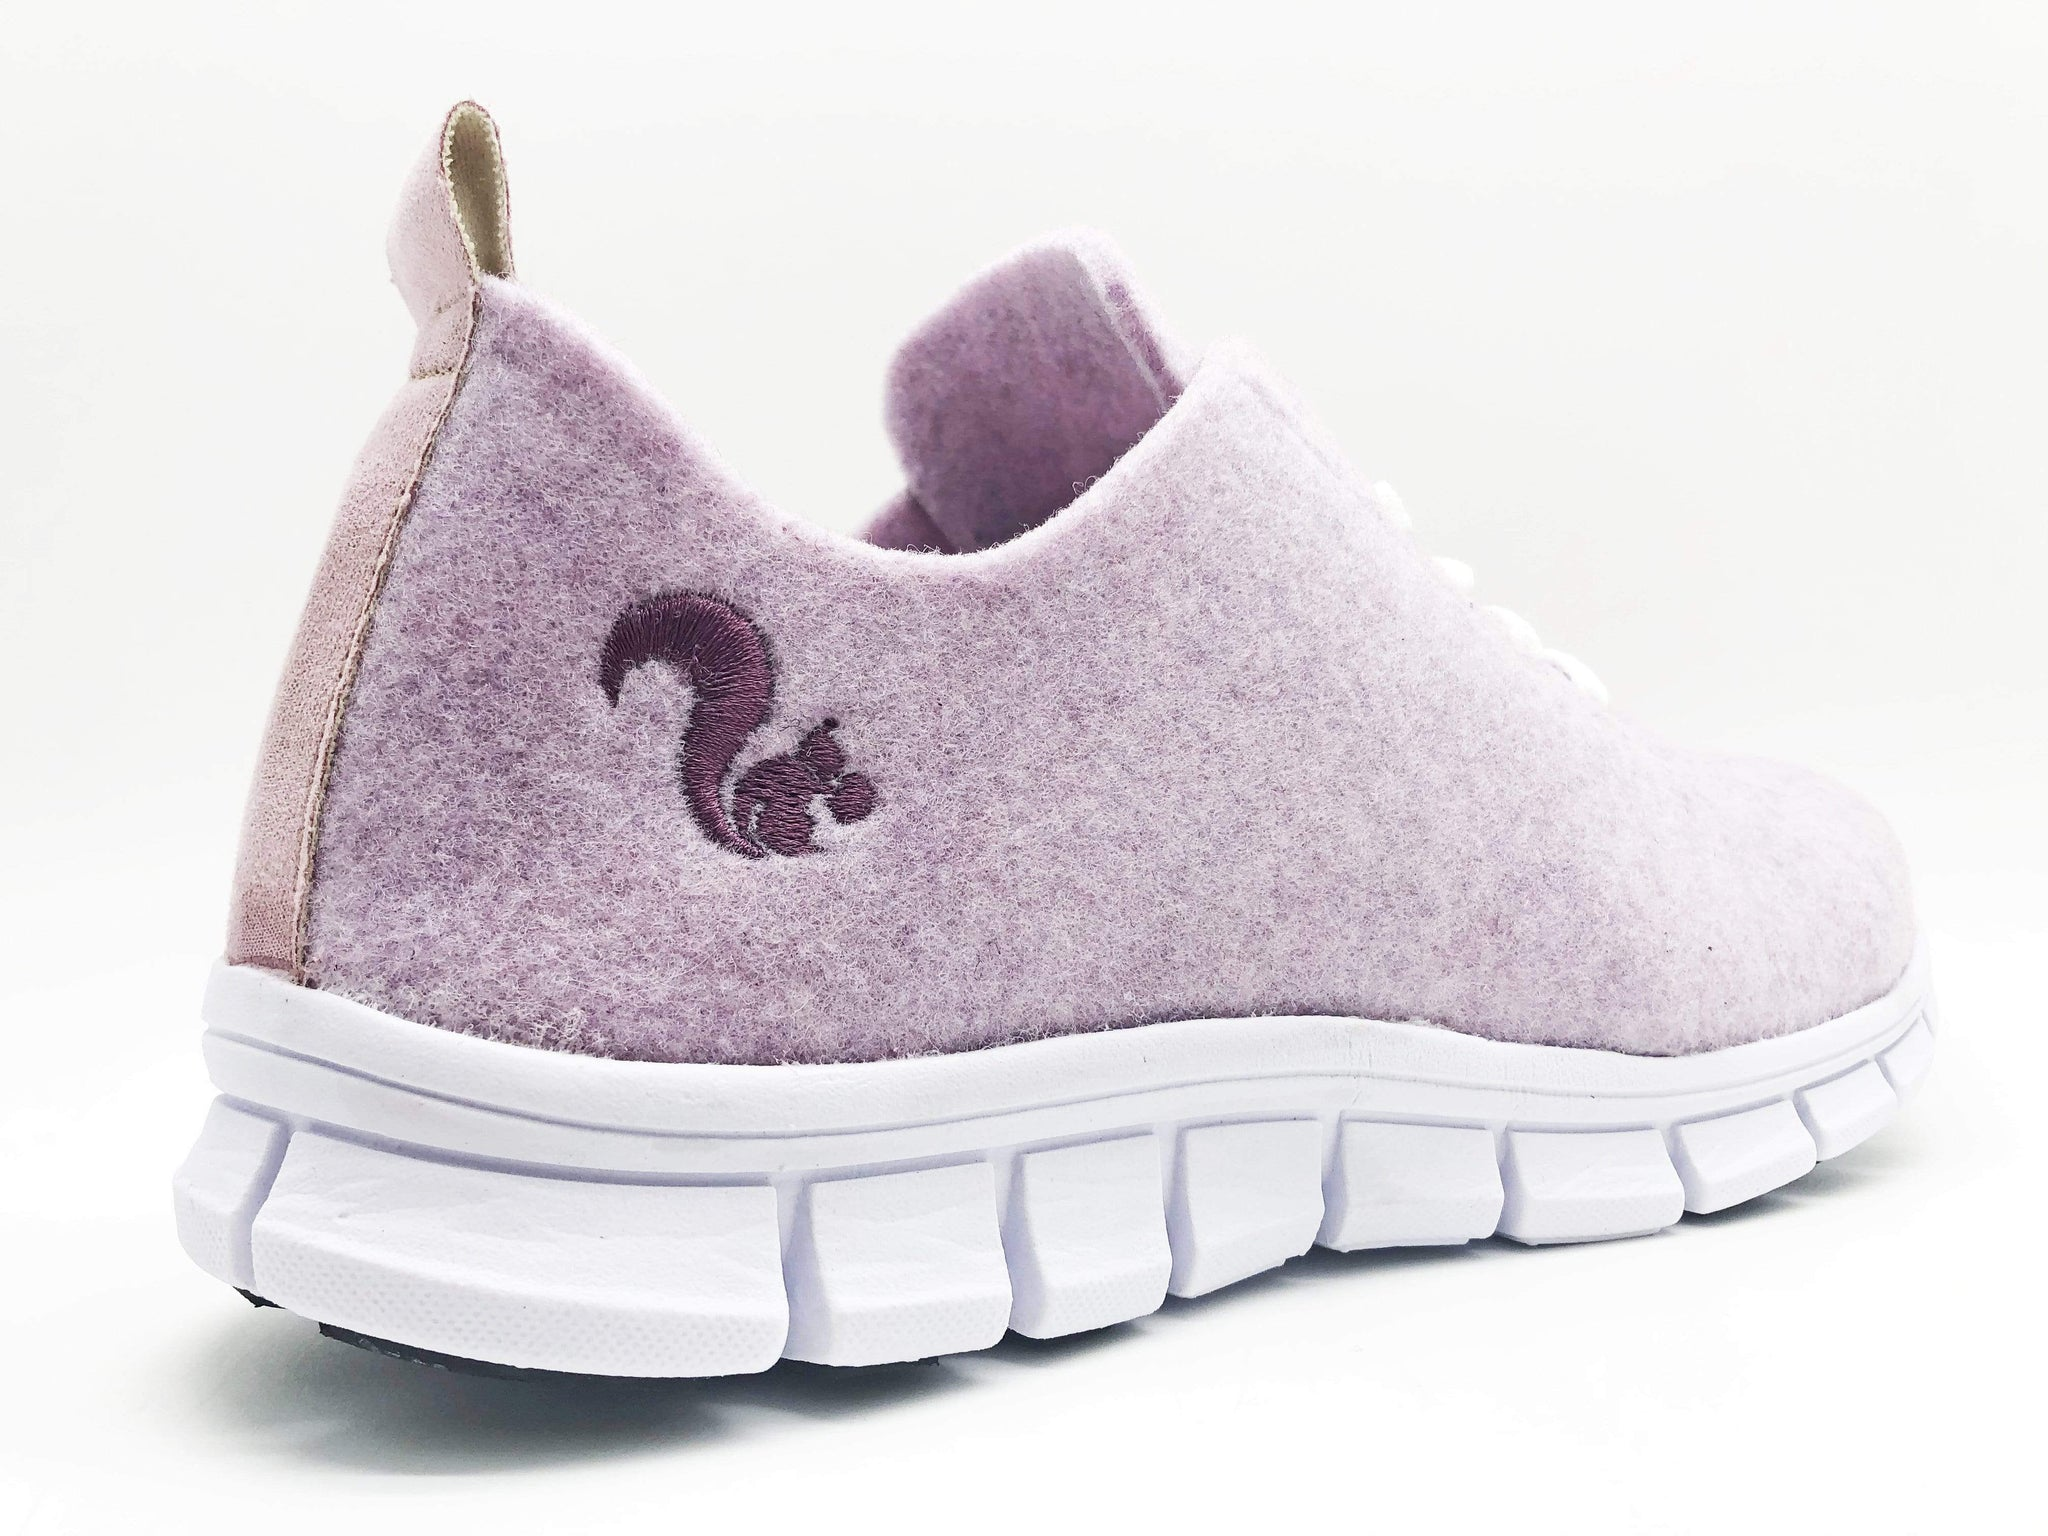 NAT 2 footwear thies ® PET Sneaker lila | vegan aus recycelten Flaschen sustainable fashion ethical fashion